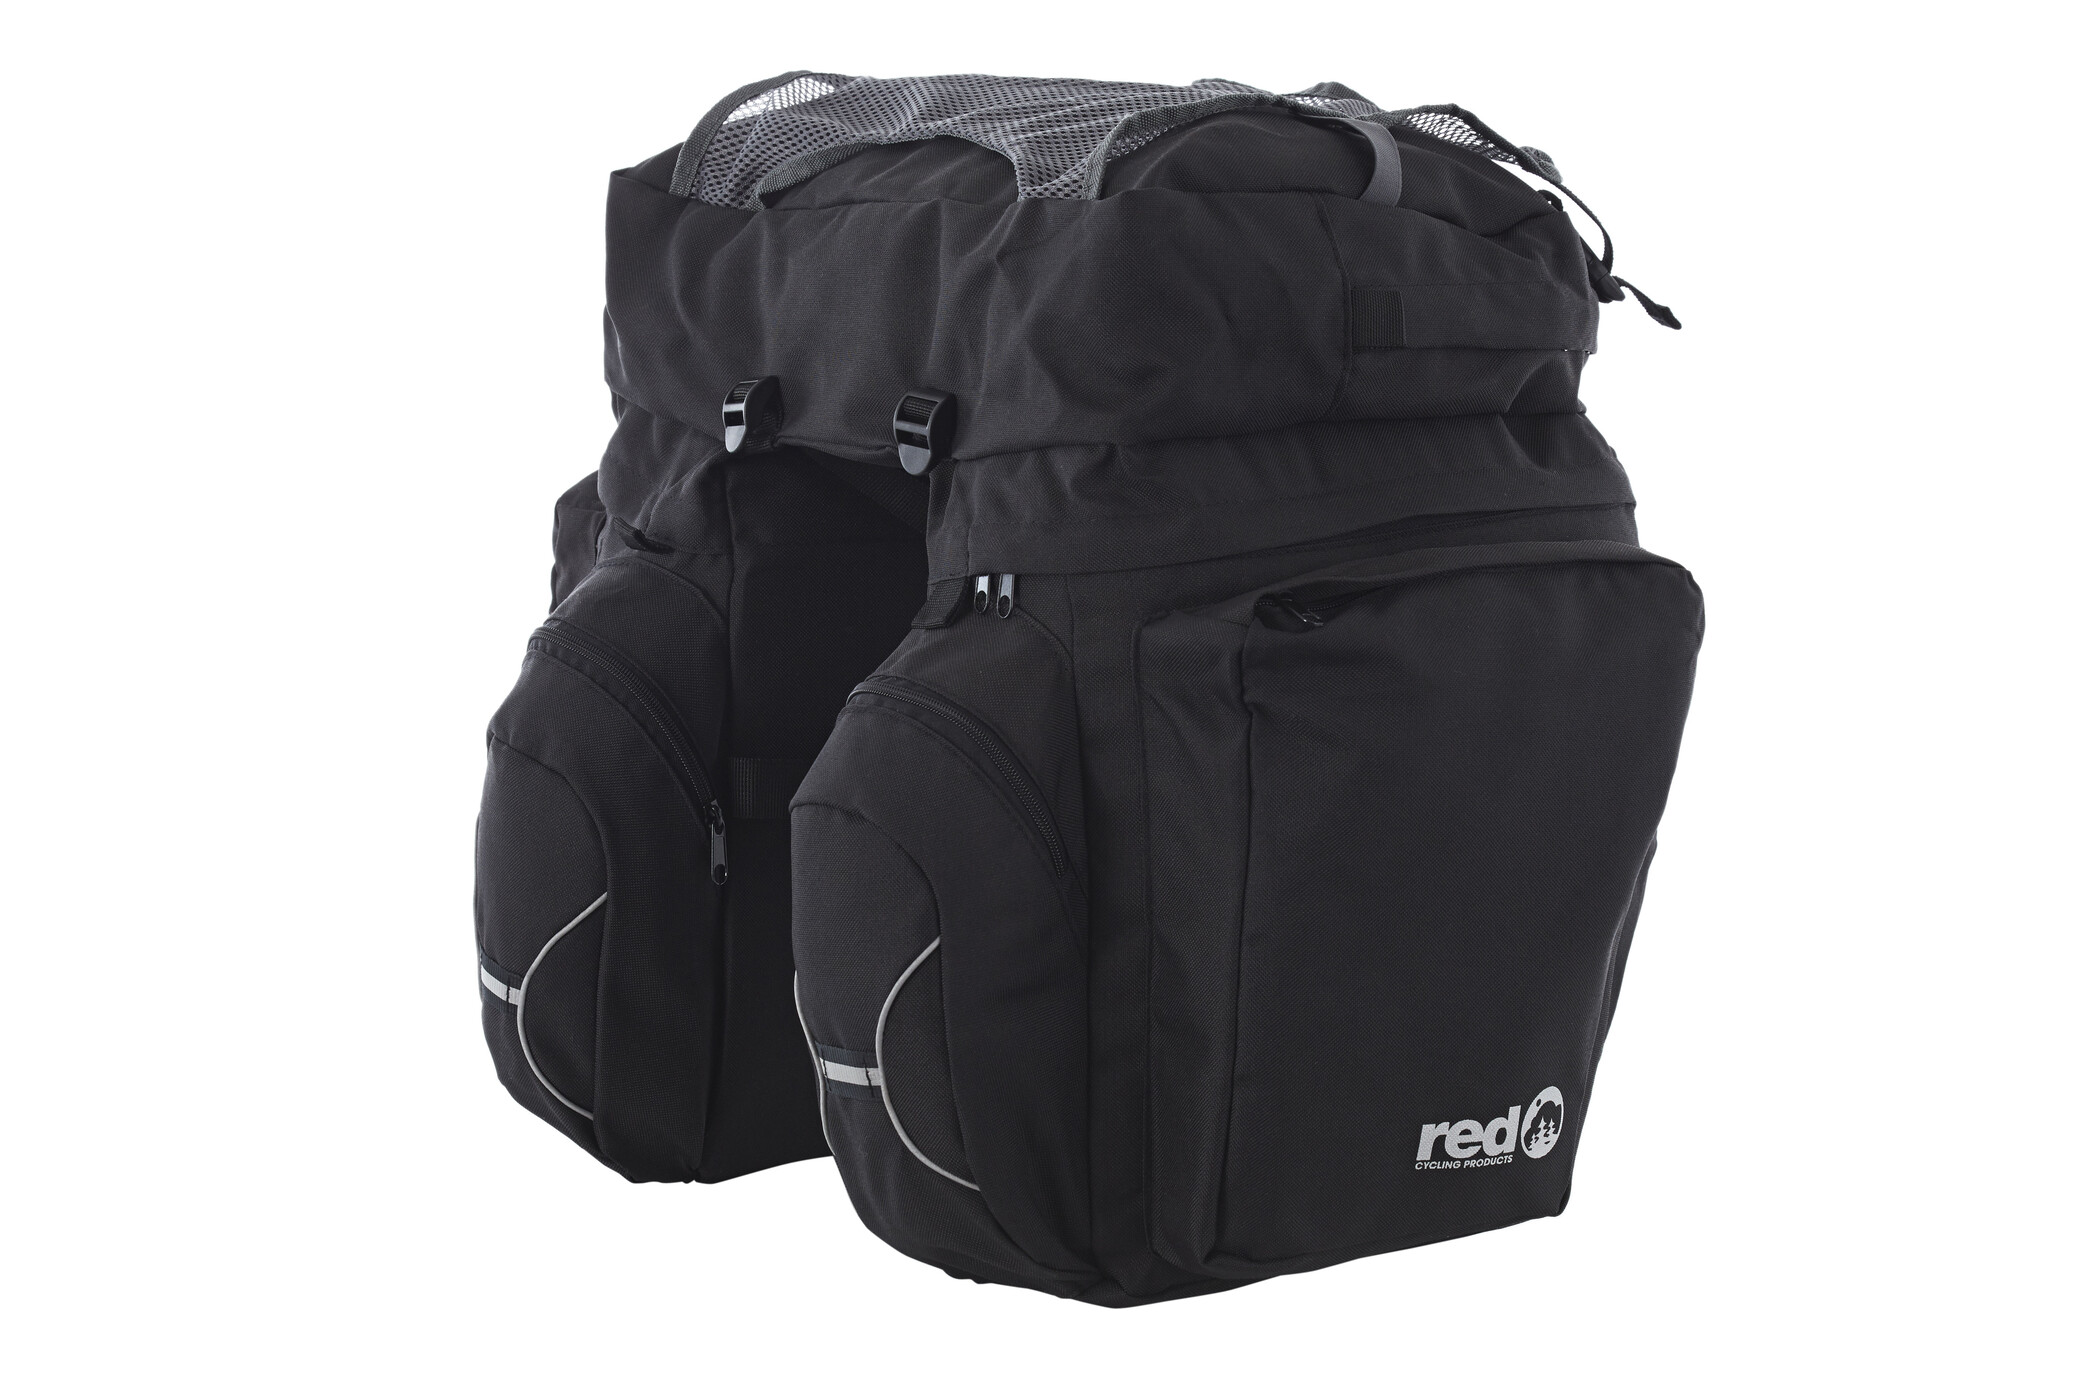 Red Cycling Products Touring Set Sidetasker, black (2019) | Rack bags